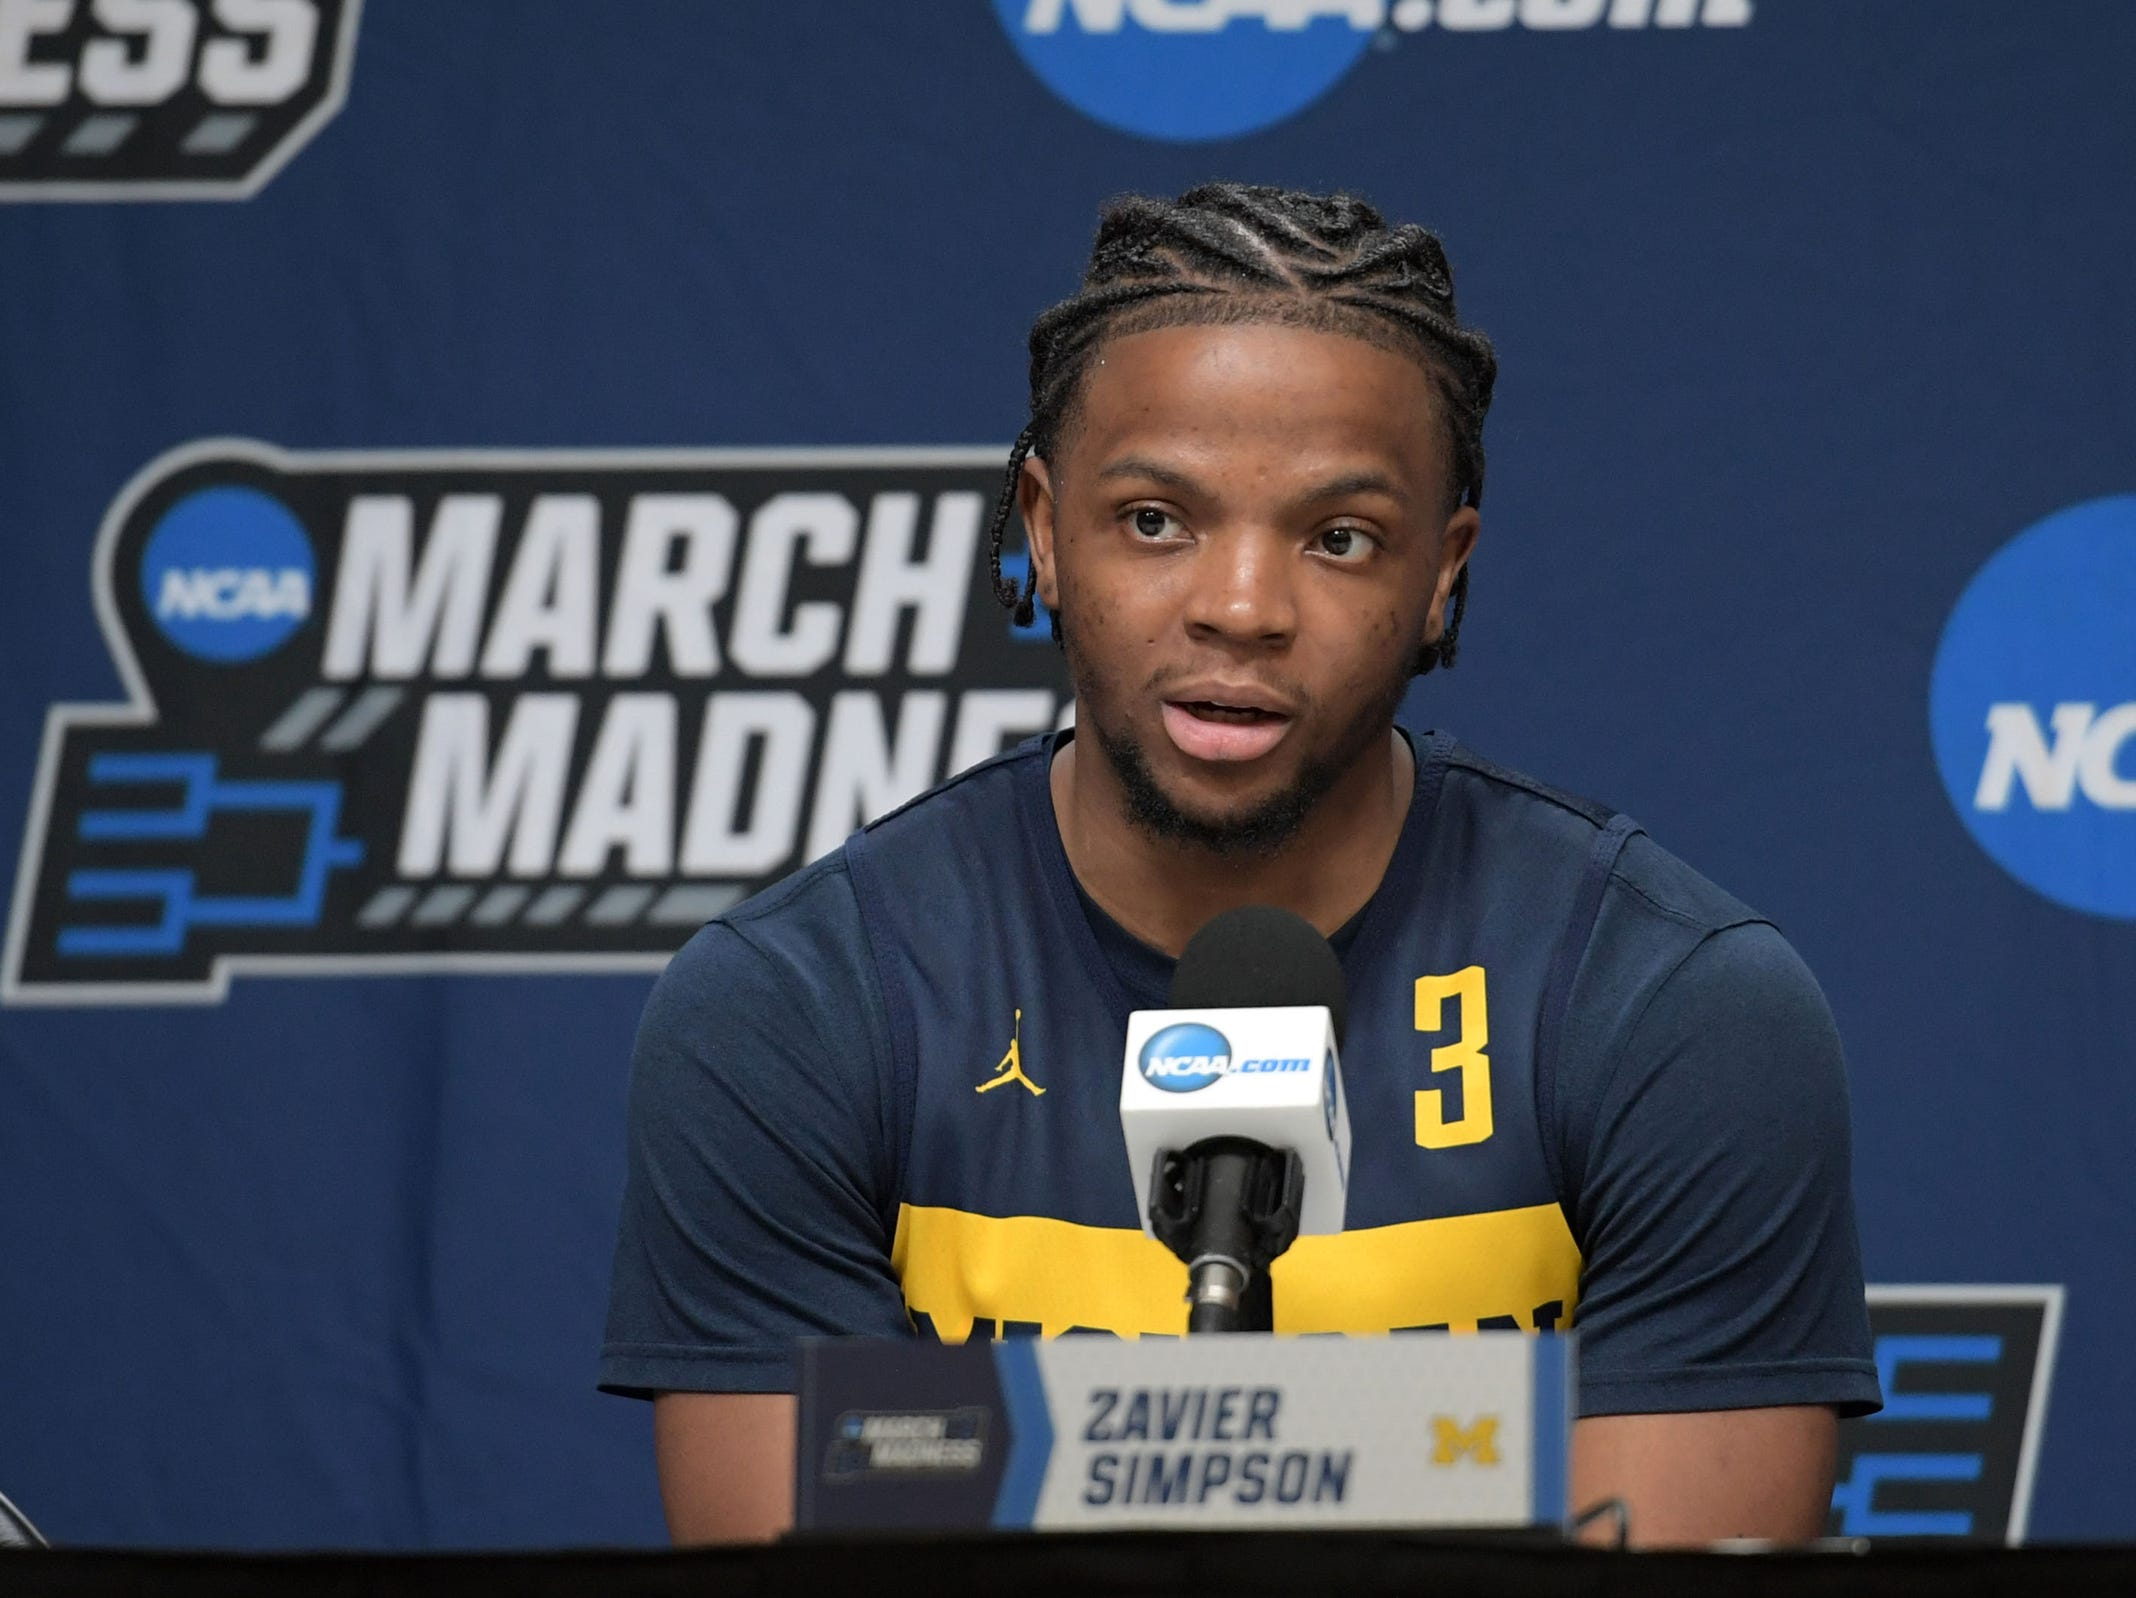 Mar 20, 2019; Des Moines, IA, USA; Michigan Wolverines guard Zavier Simpson (3) speaks in a press conference during practice before the first round of the 2019 NCAA Tournament at Wells Fargo Arena. Mandatory Credit: Steven Branscombe-USA TODAY Sports